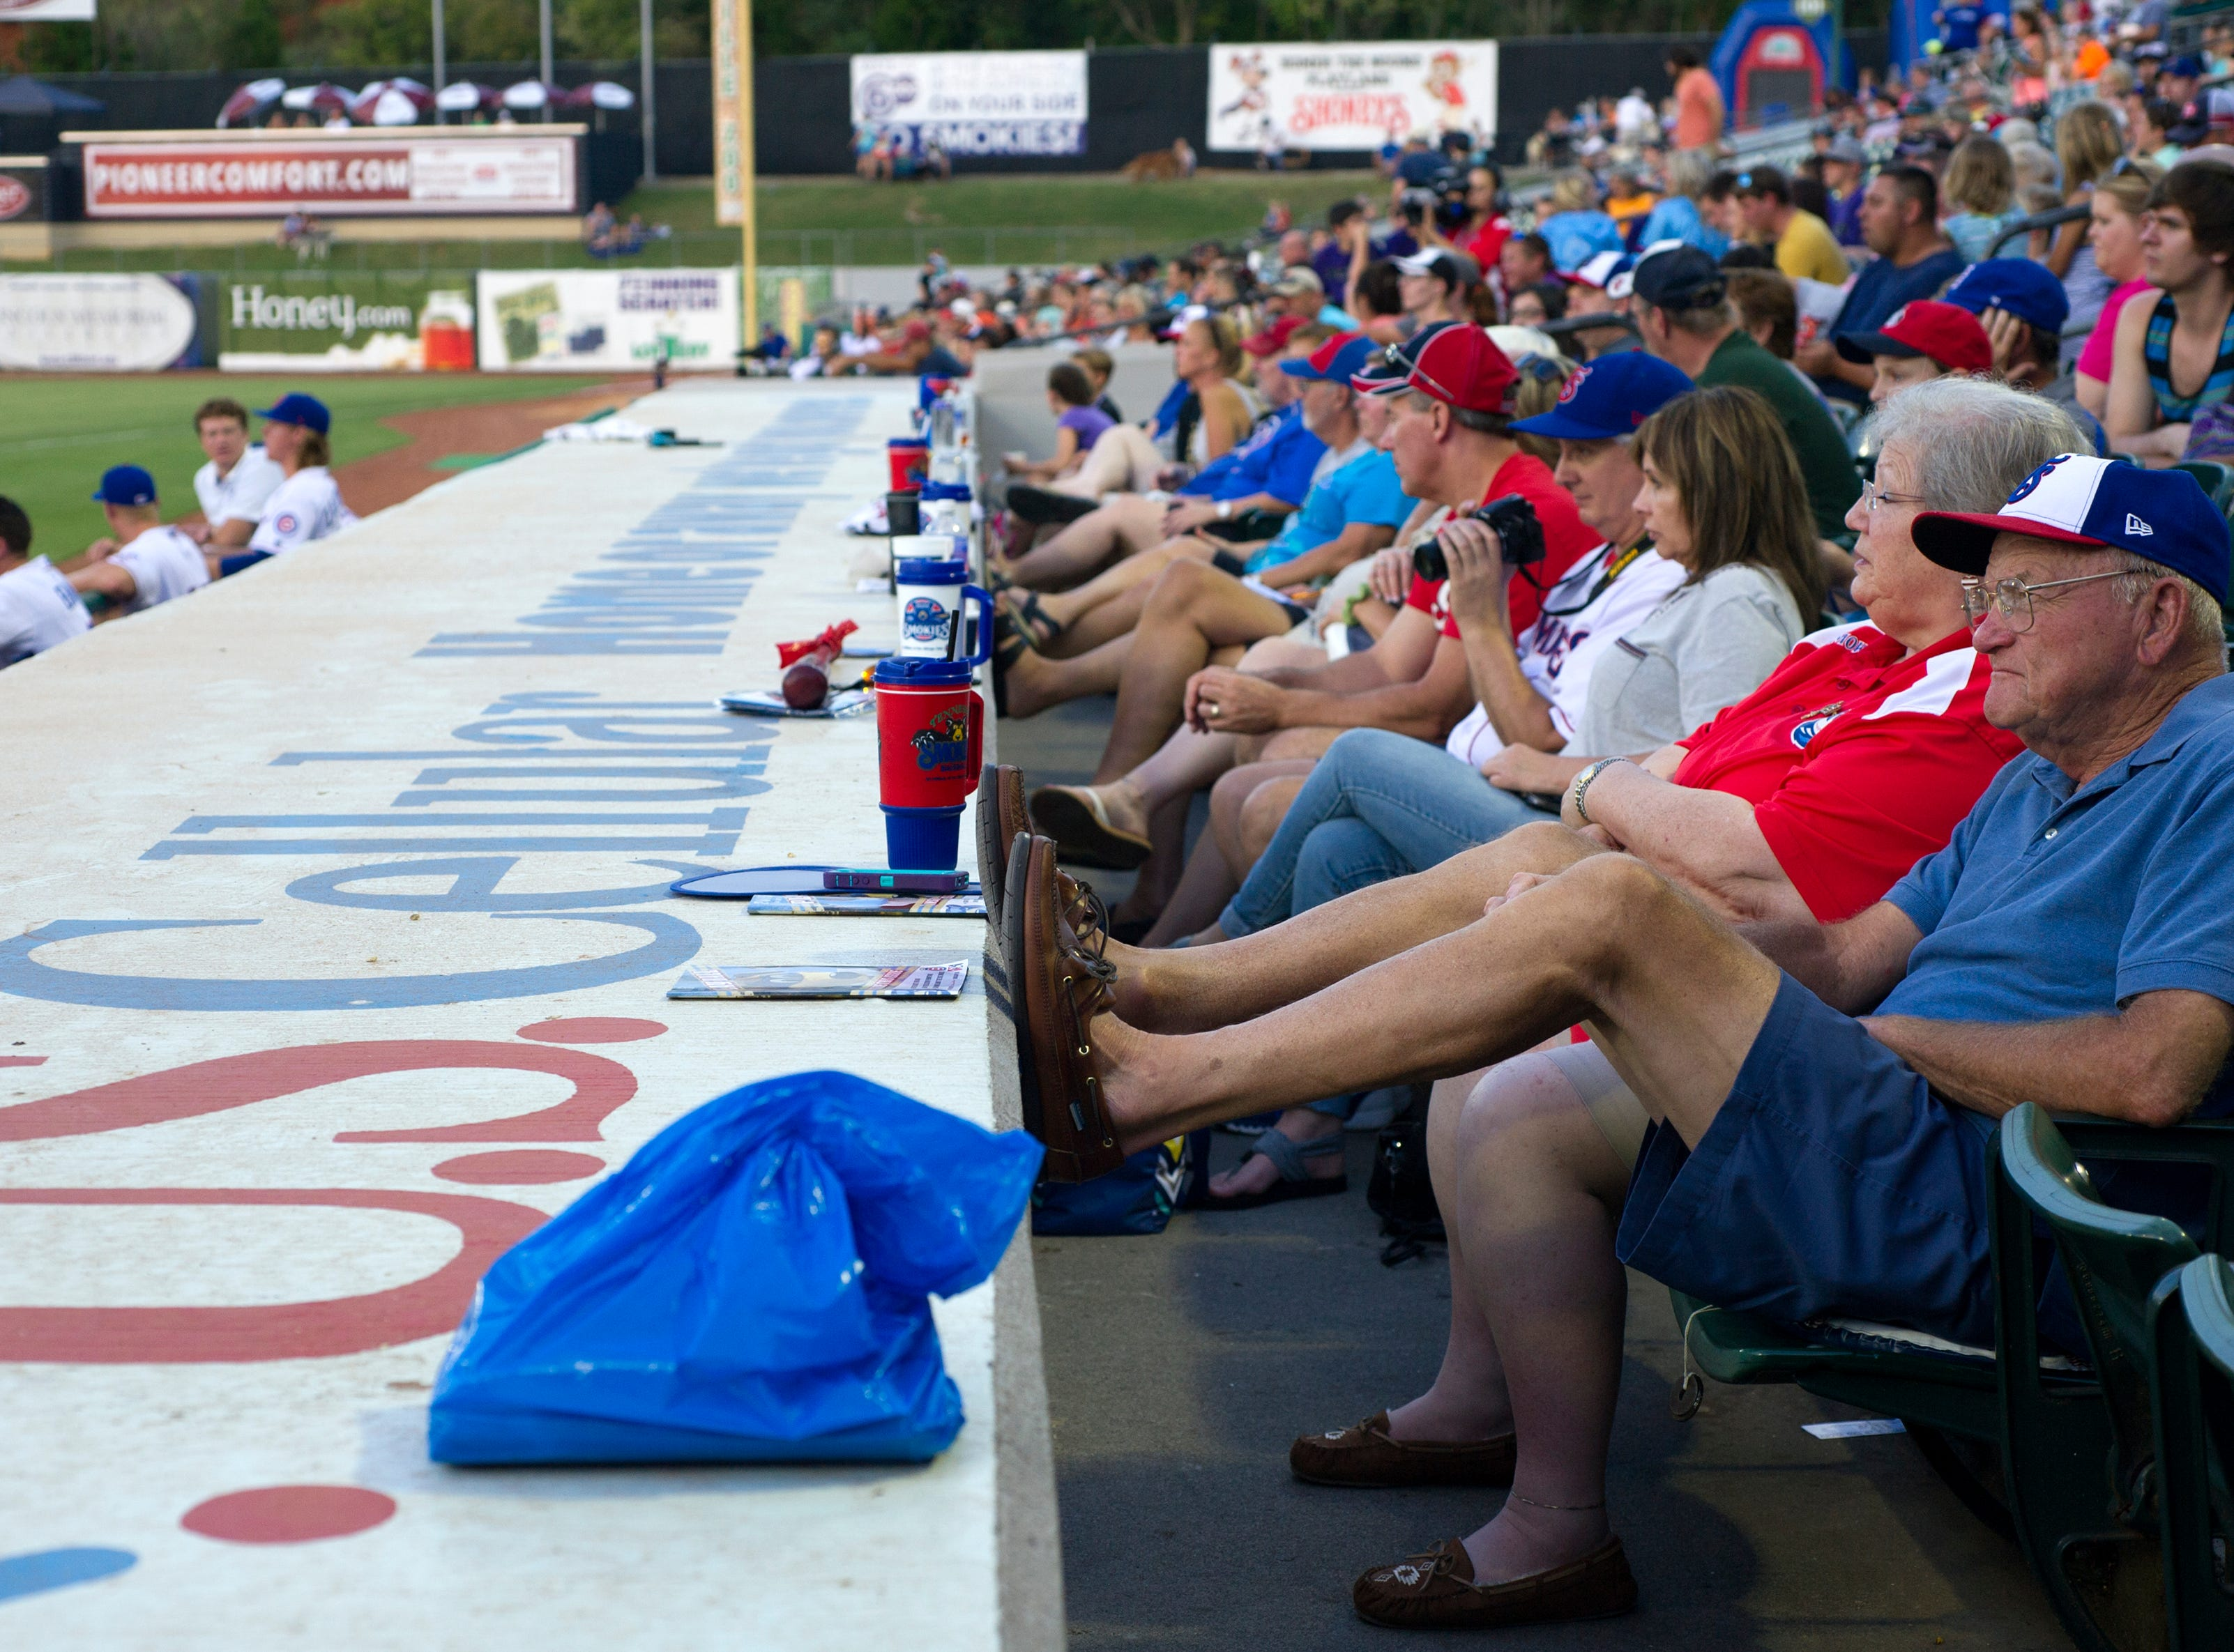 Alex Fisher of Knoxville (right) sits with his friend Edie Hummel of Knoxville during the Tennessee Smokies versus the Jacksonville Suns baseball game at Smokies Stadium in Kodak Tuesday, Sep. 1, 2015. The pair said they met at their bowling league; Hummel has had season passes for this seat for ten years.